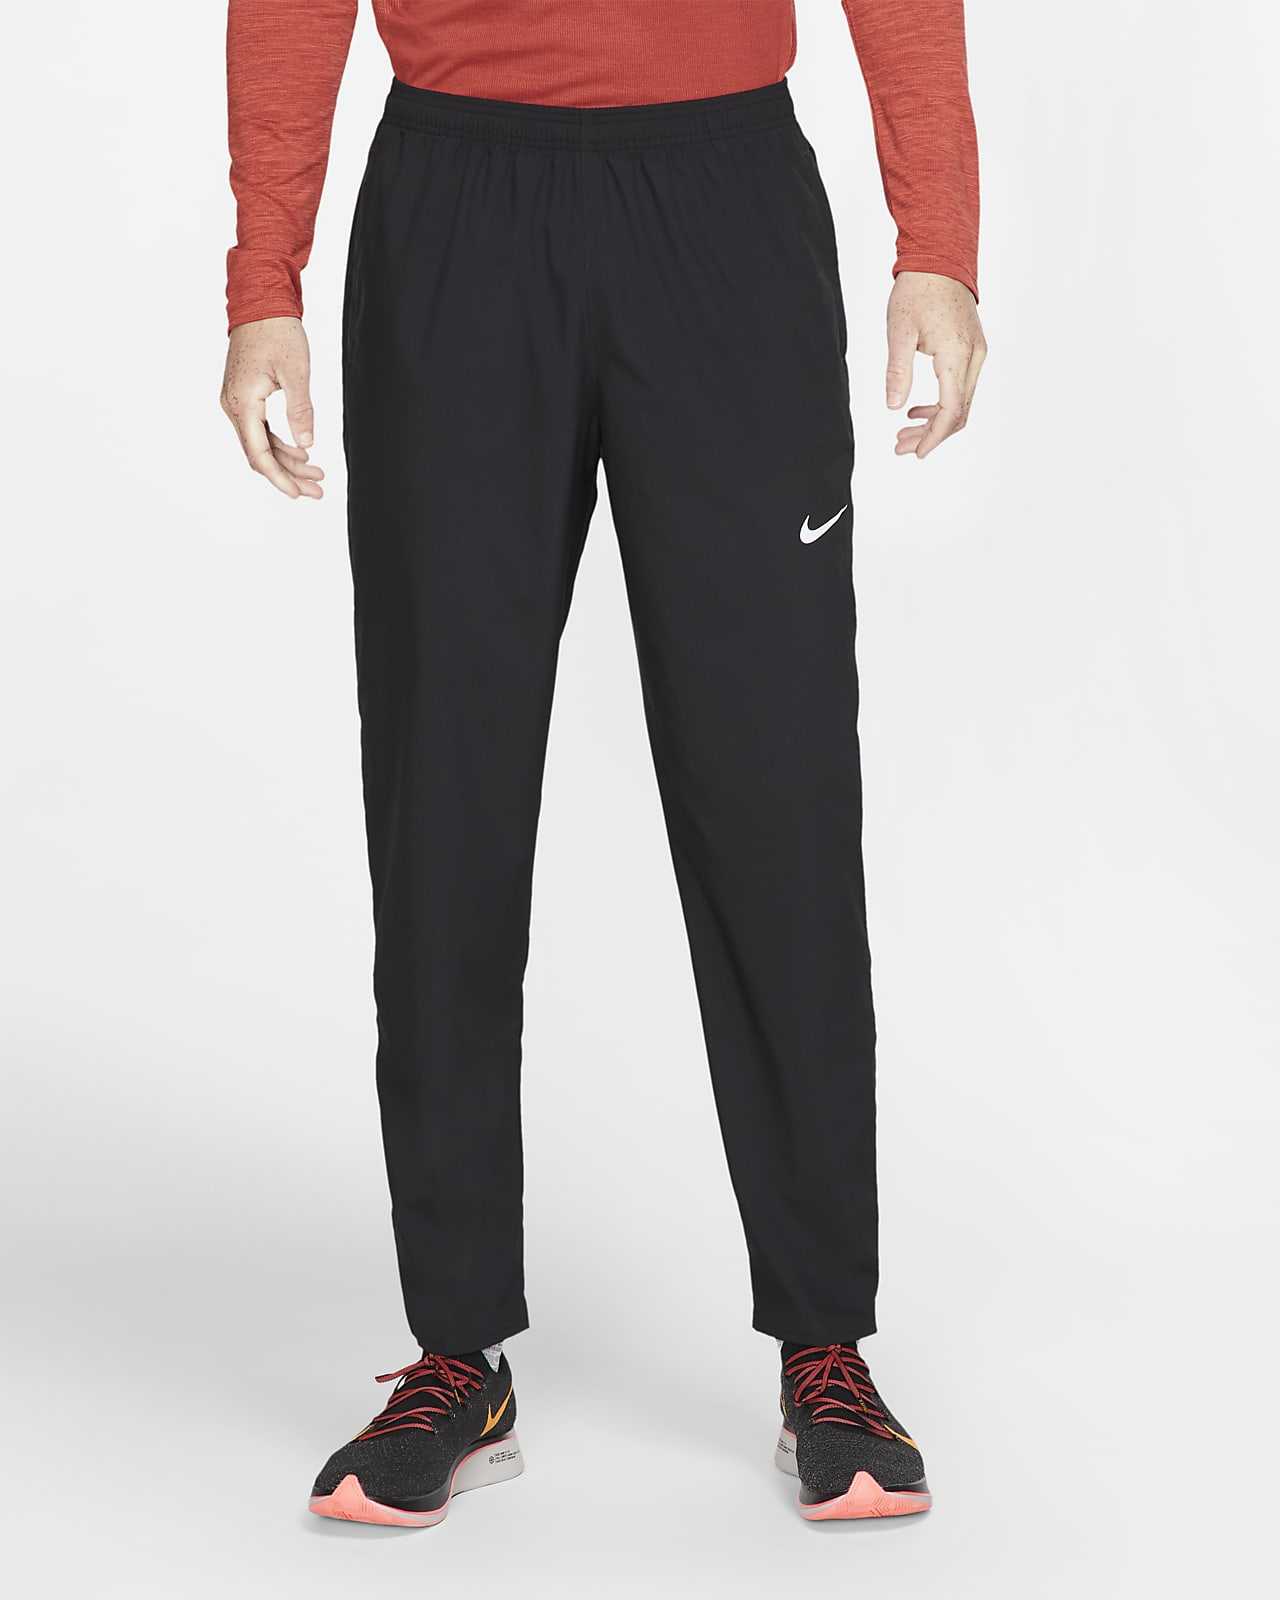 Nike Men's Woven Running Trousers